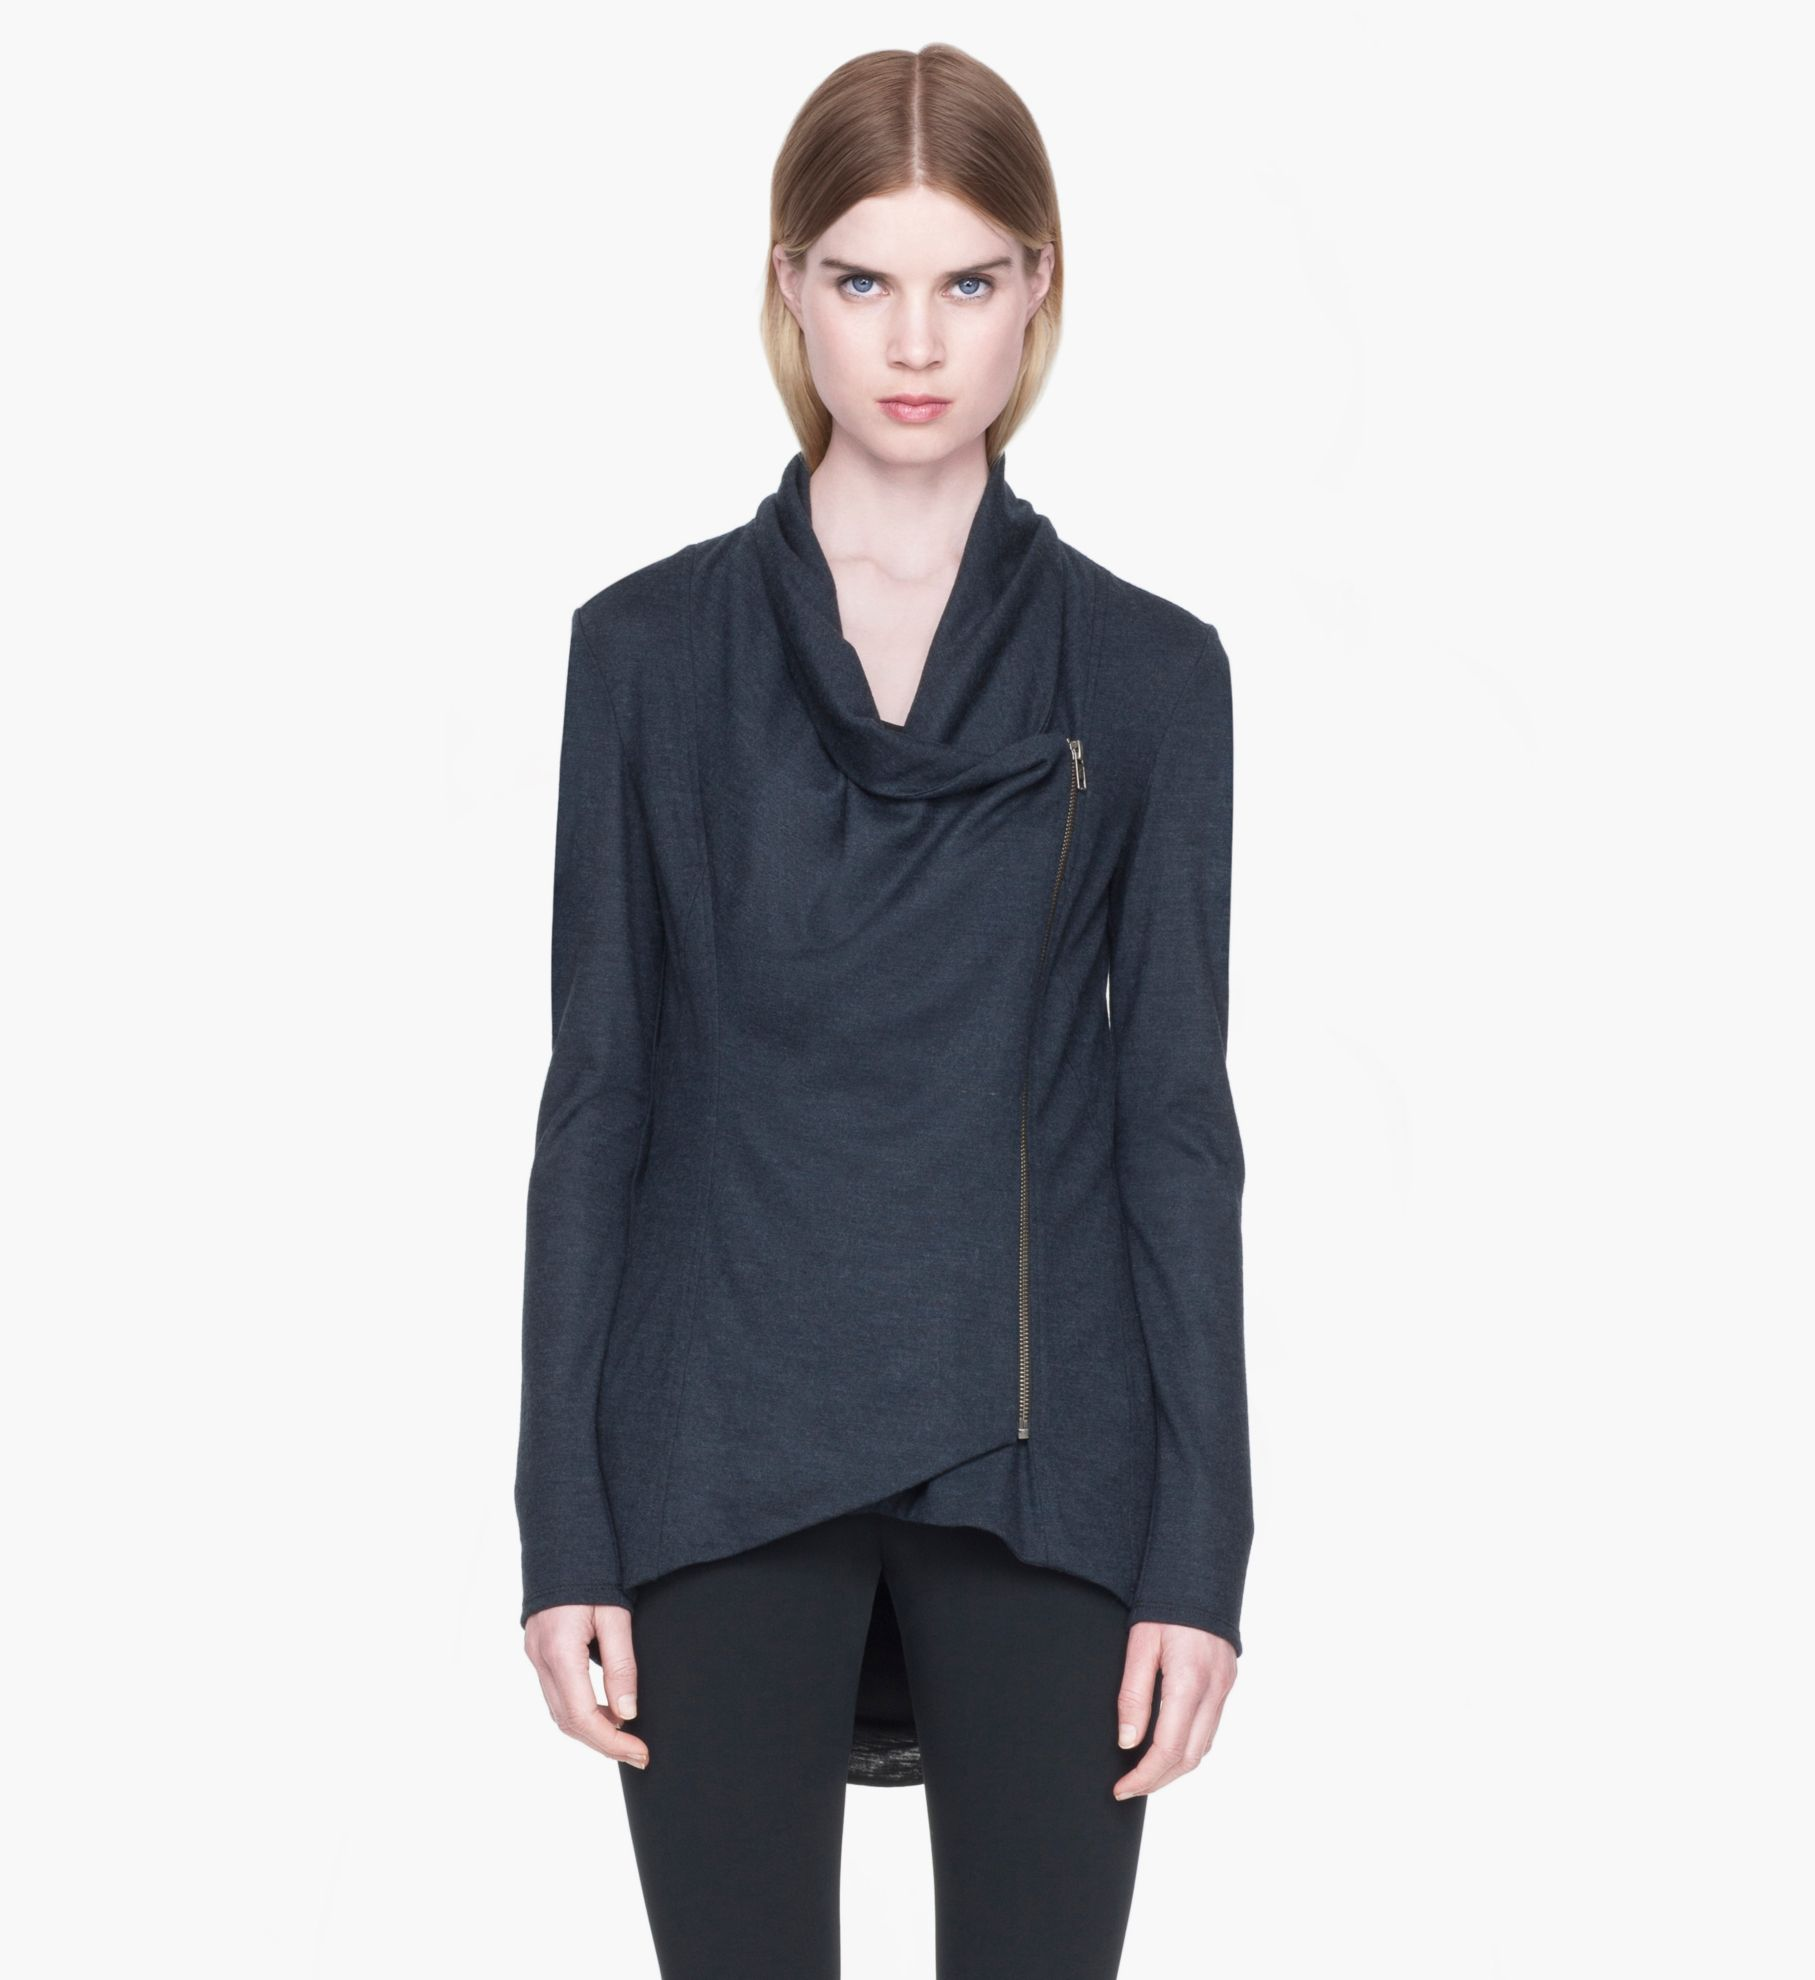 SONAR WOOL COLLARED CARDIGAN